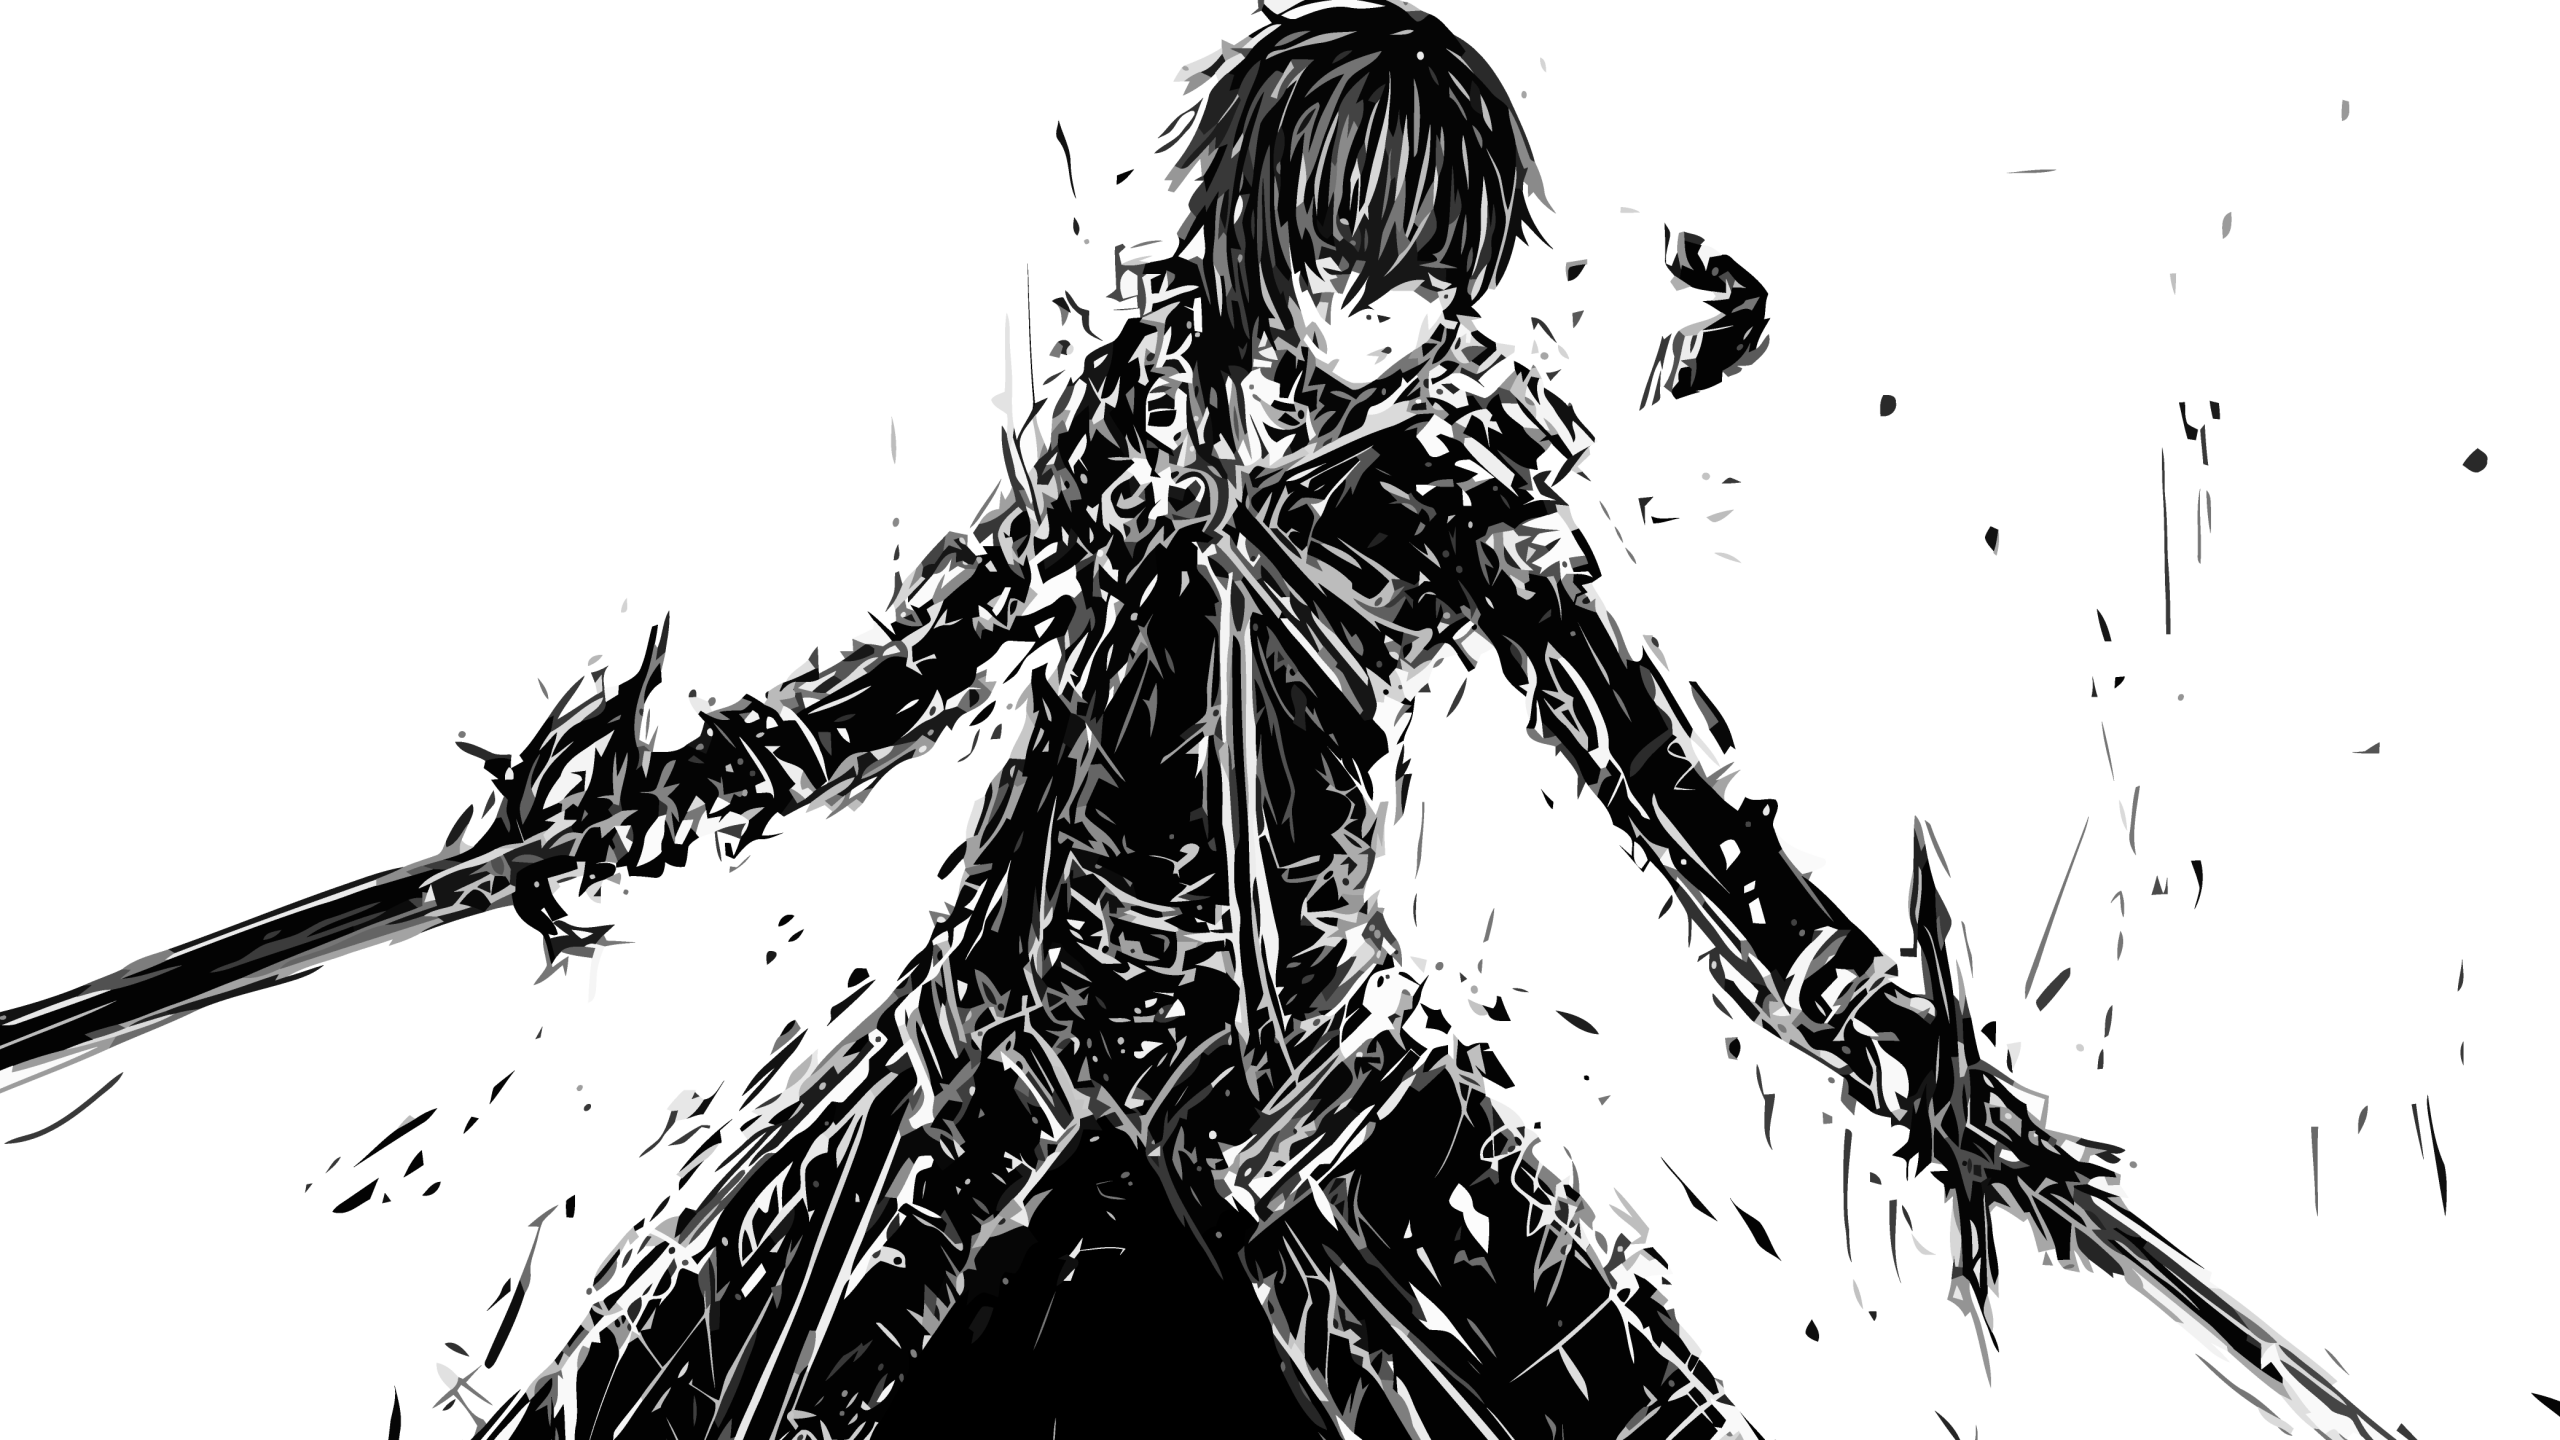 Anime / Sword Art Online - Anime Guy With Sword Drawing (2560x1440), Png Download